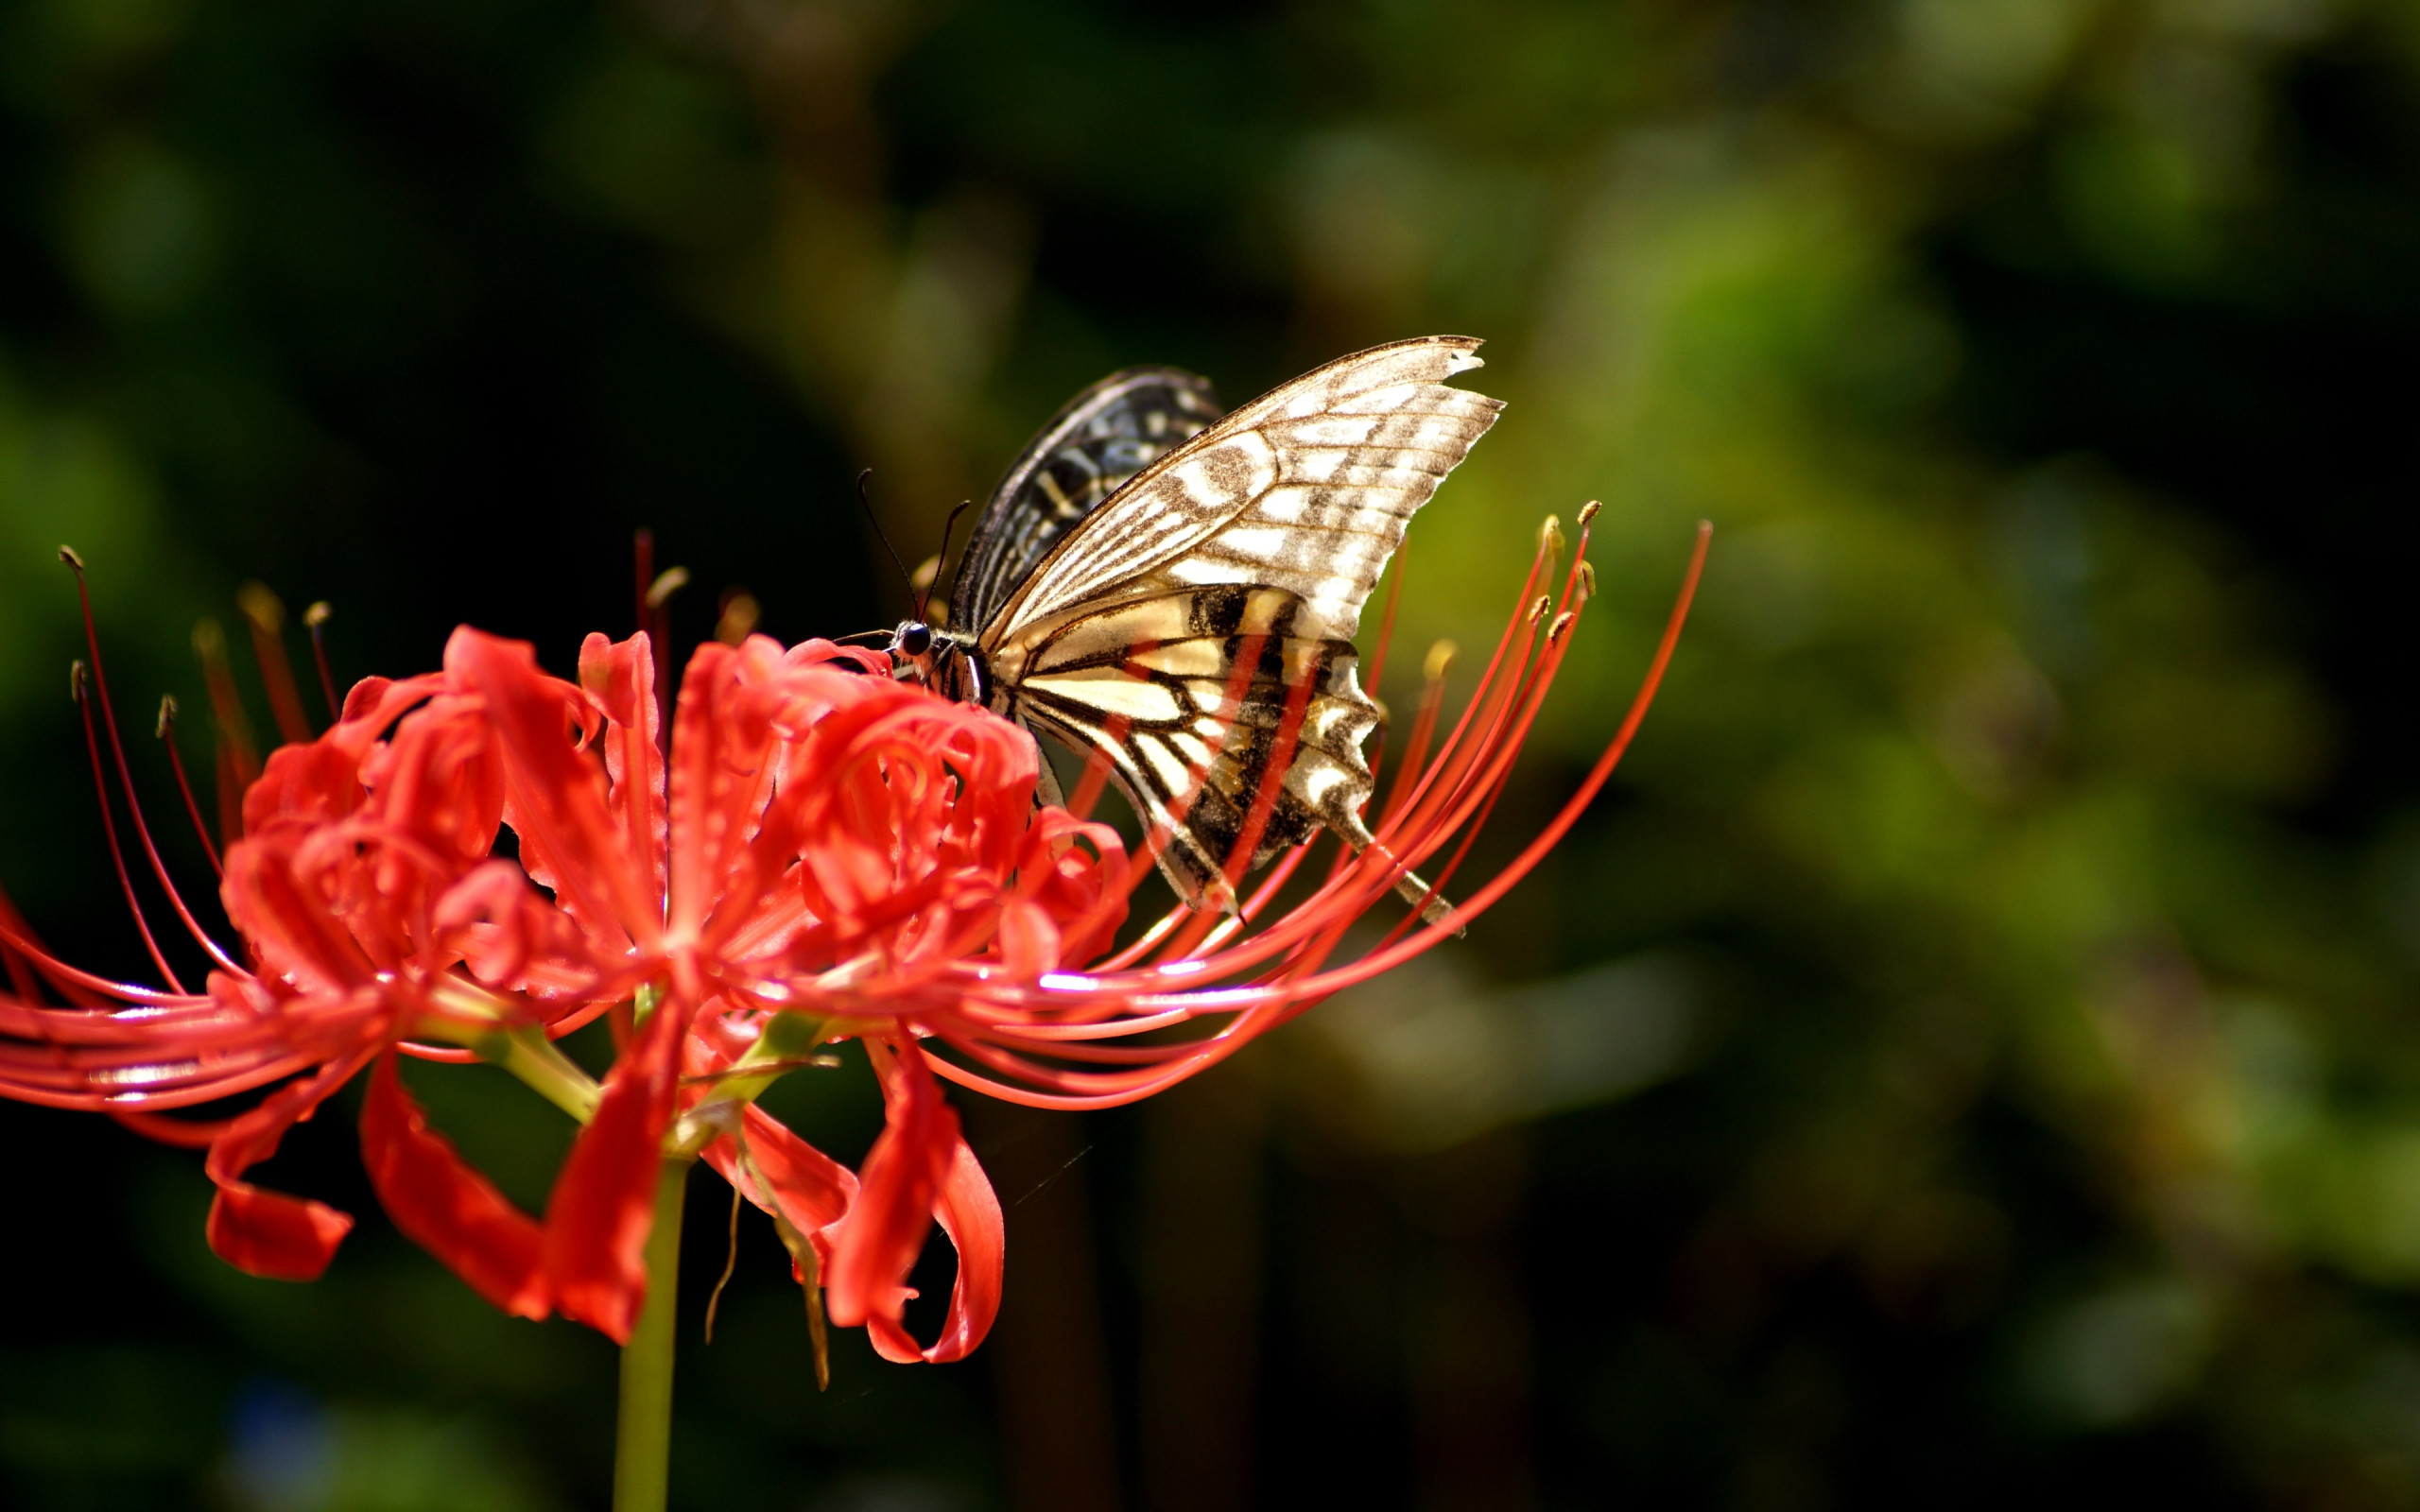 Butterfly on Lycoris Radiata flower | 2560x1600 wallpaper